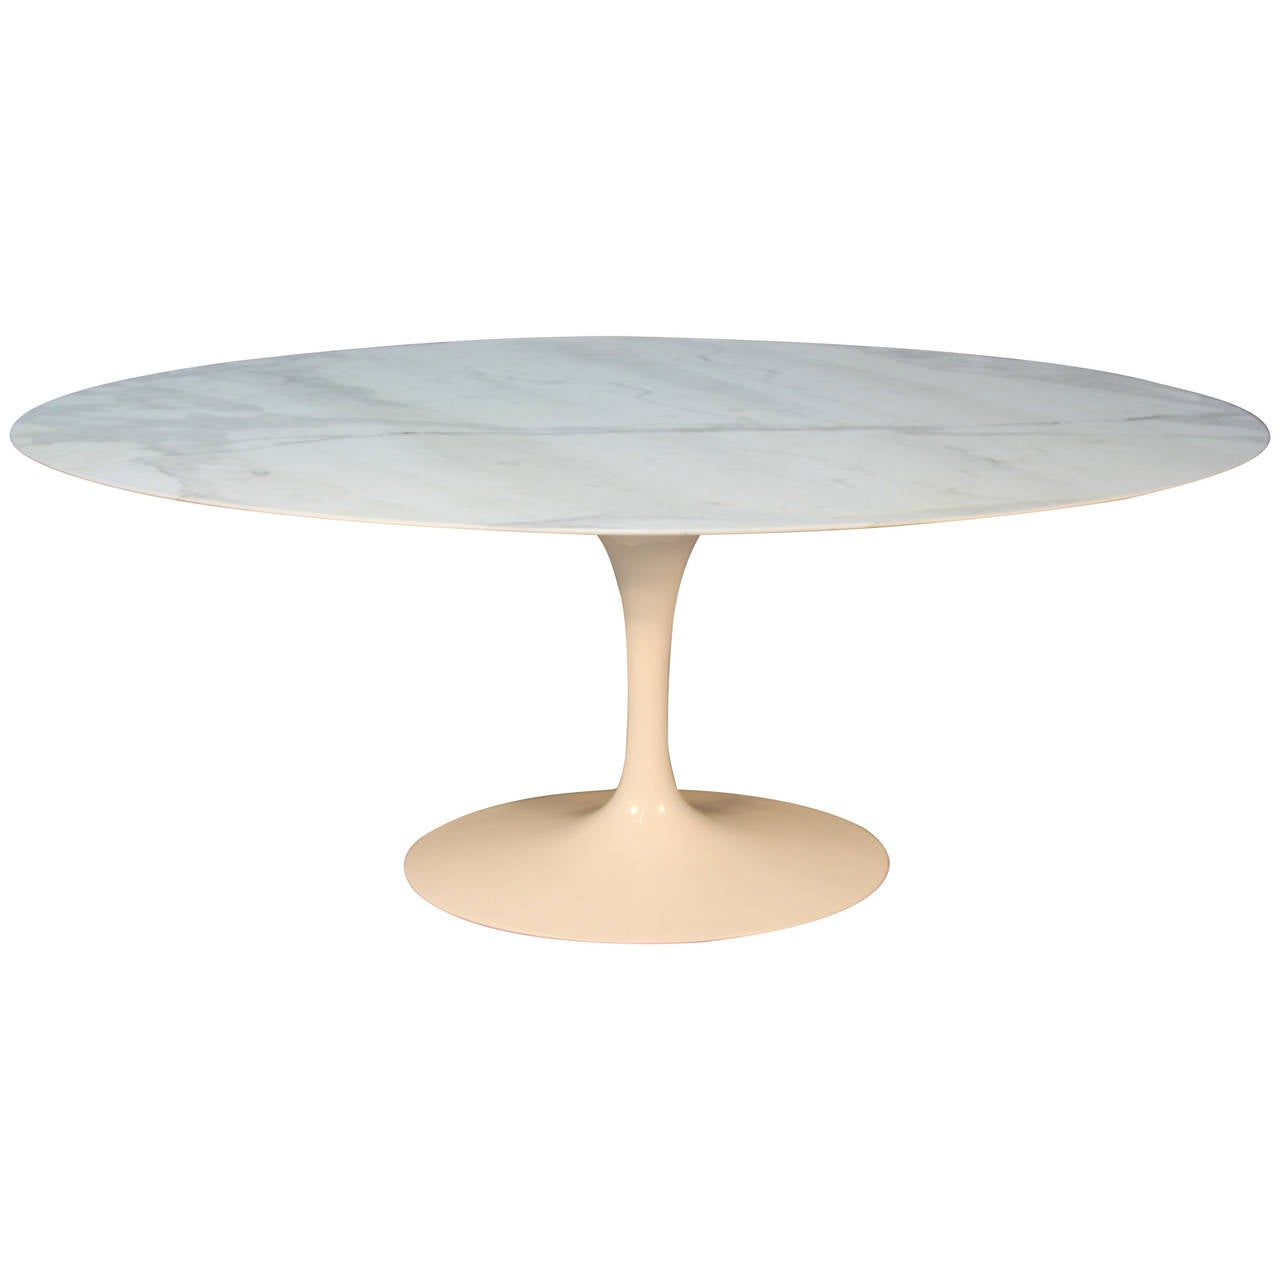 Saarinen oval marble top dining table at 1stdibs for Oval dining table